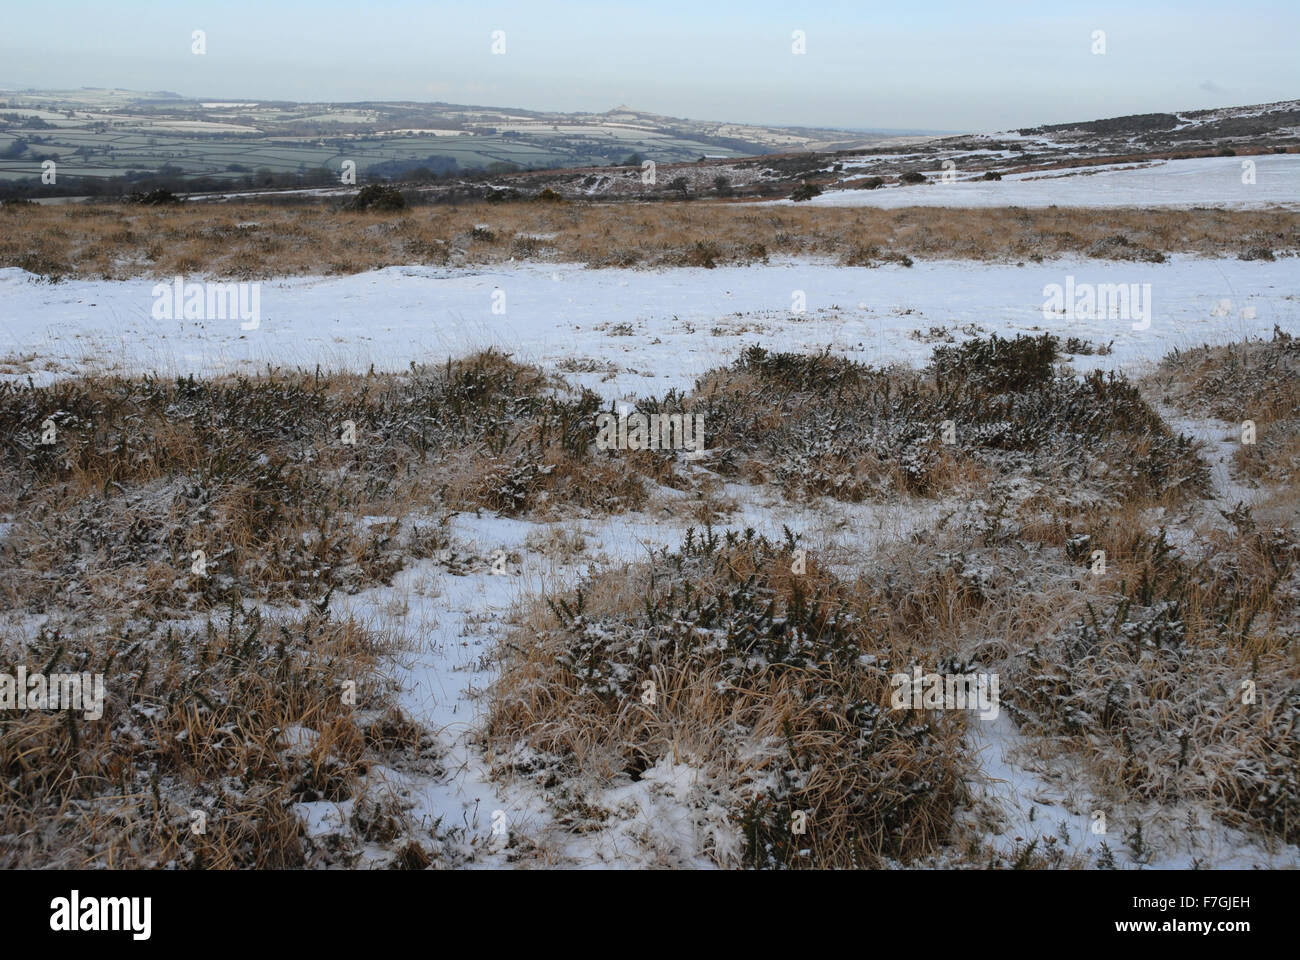 Whitchurch Common with snow in winter, Dartmoor National Park, Devon, England - Stock Image